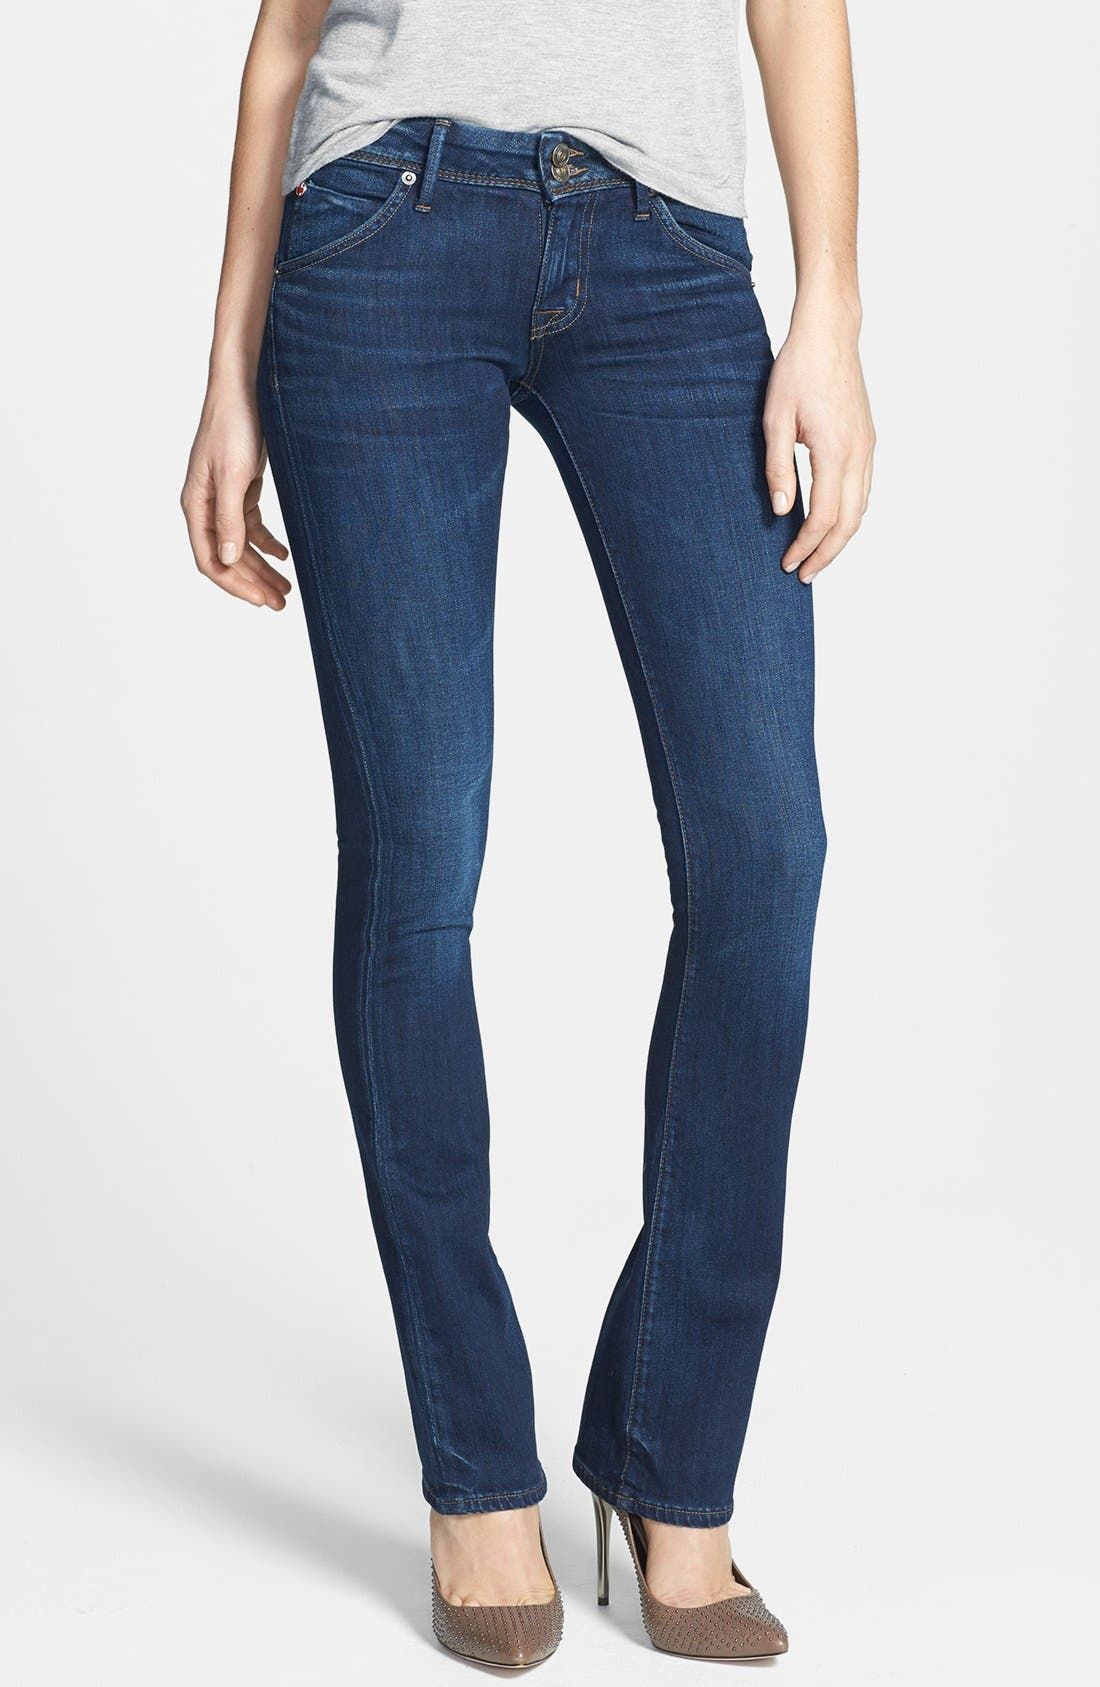 Alternate Image 1 Selected - Hudson Jeans 'Beth' Baby Bootcut Jeans (Unplugged)